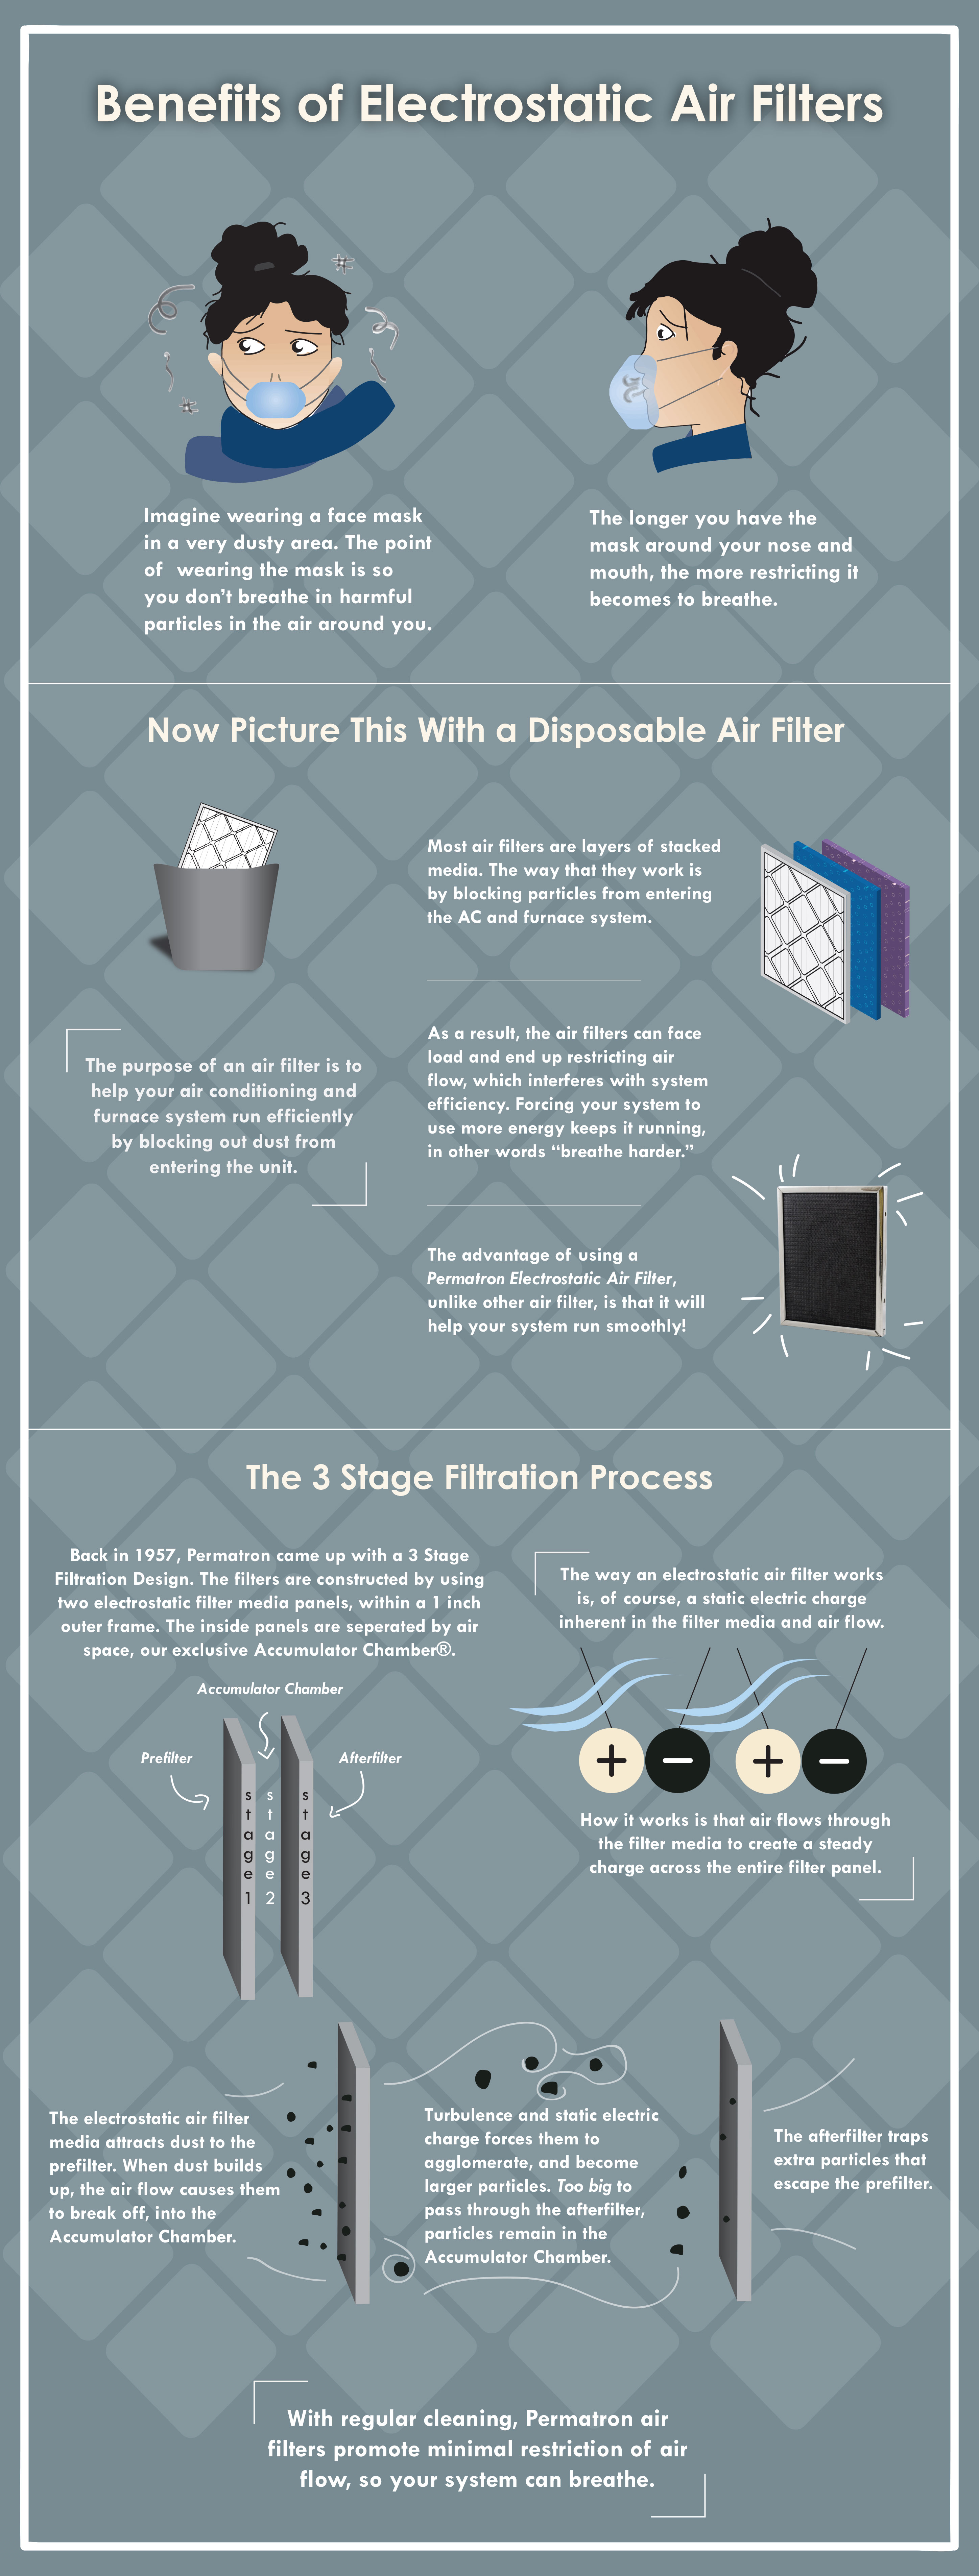 Benefits of Electrostatic Air Filters Infographic